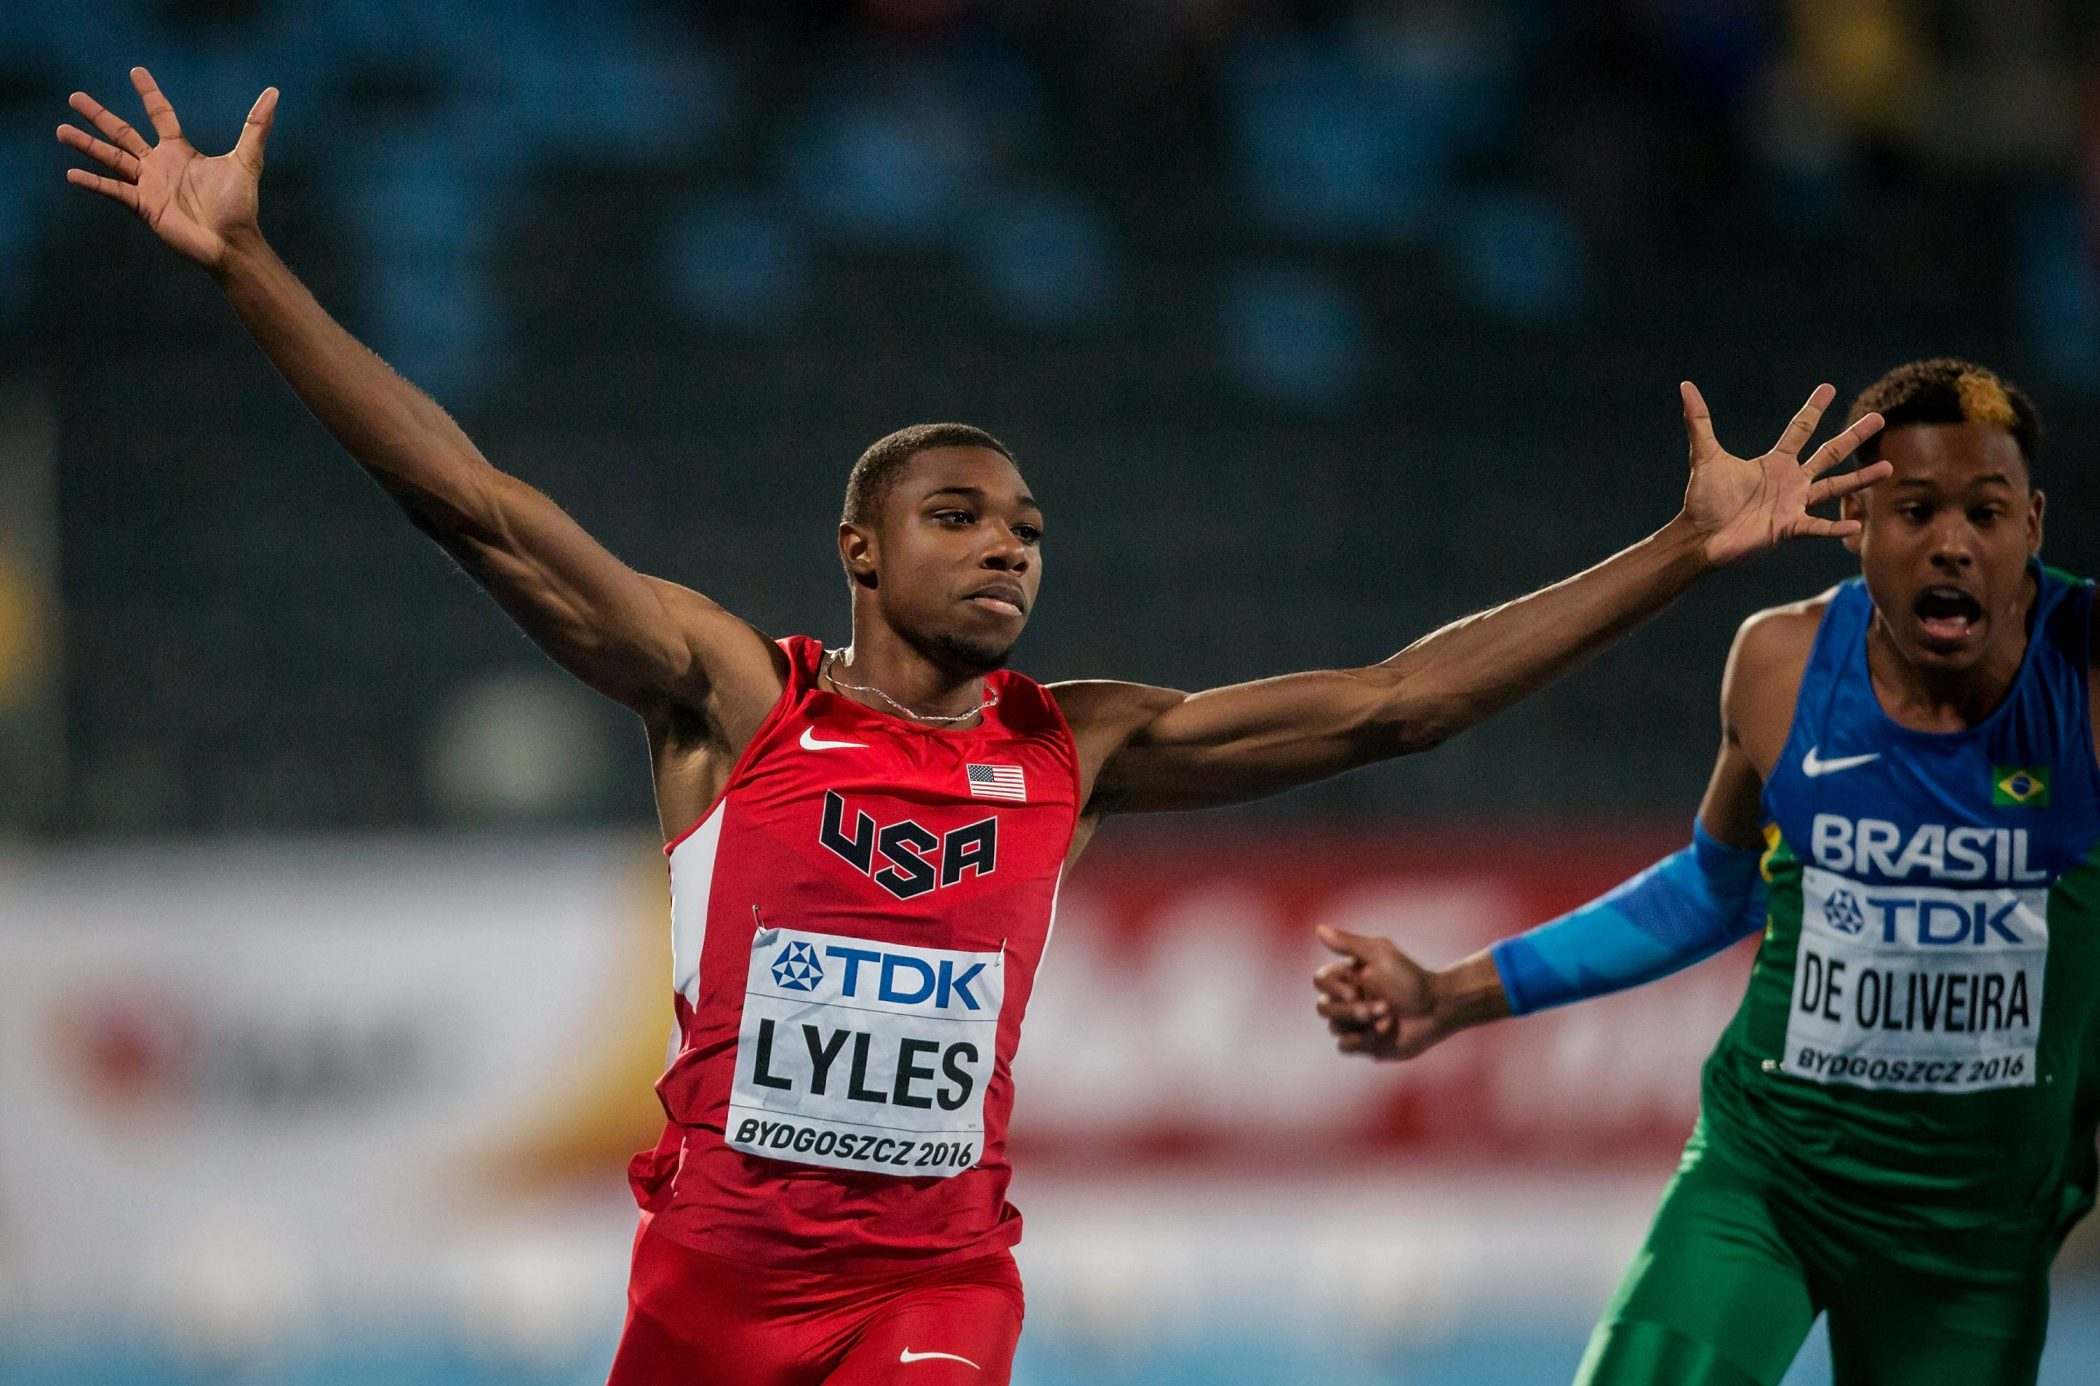 Noah Lyles becomes youngest ever 200m Diamond Trophy